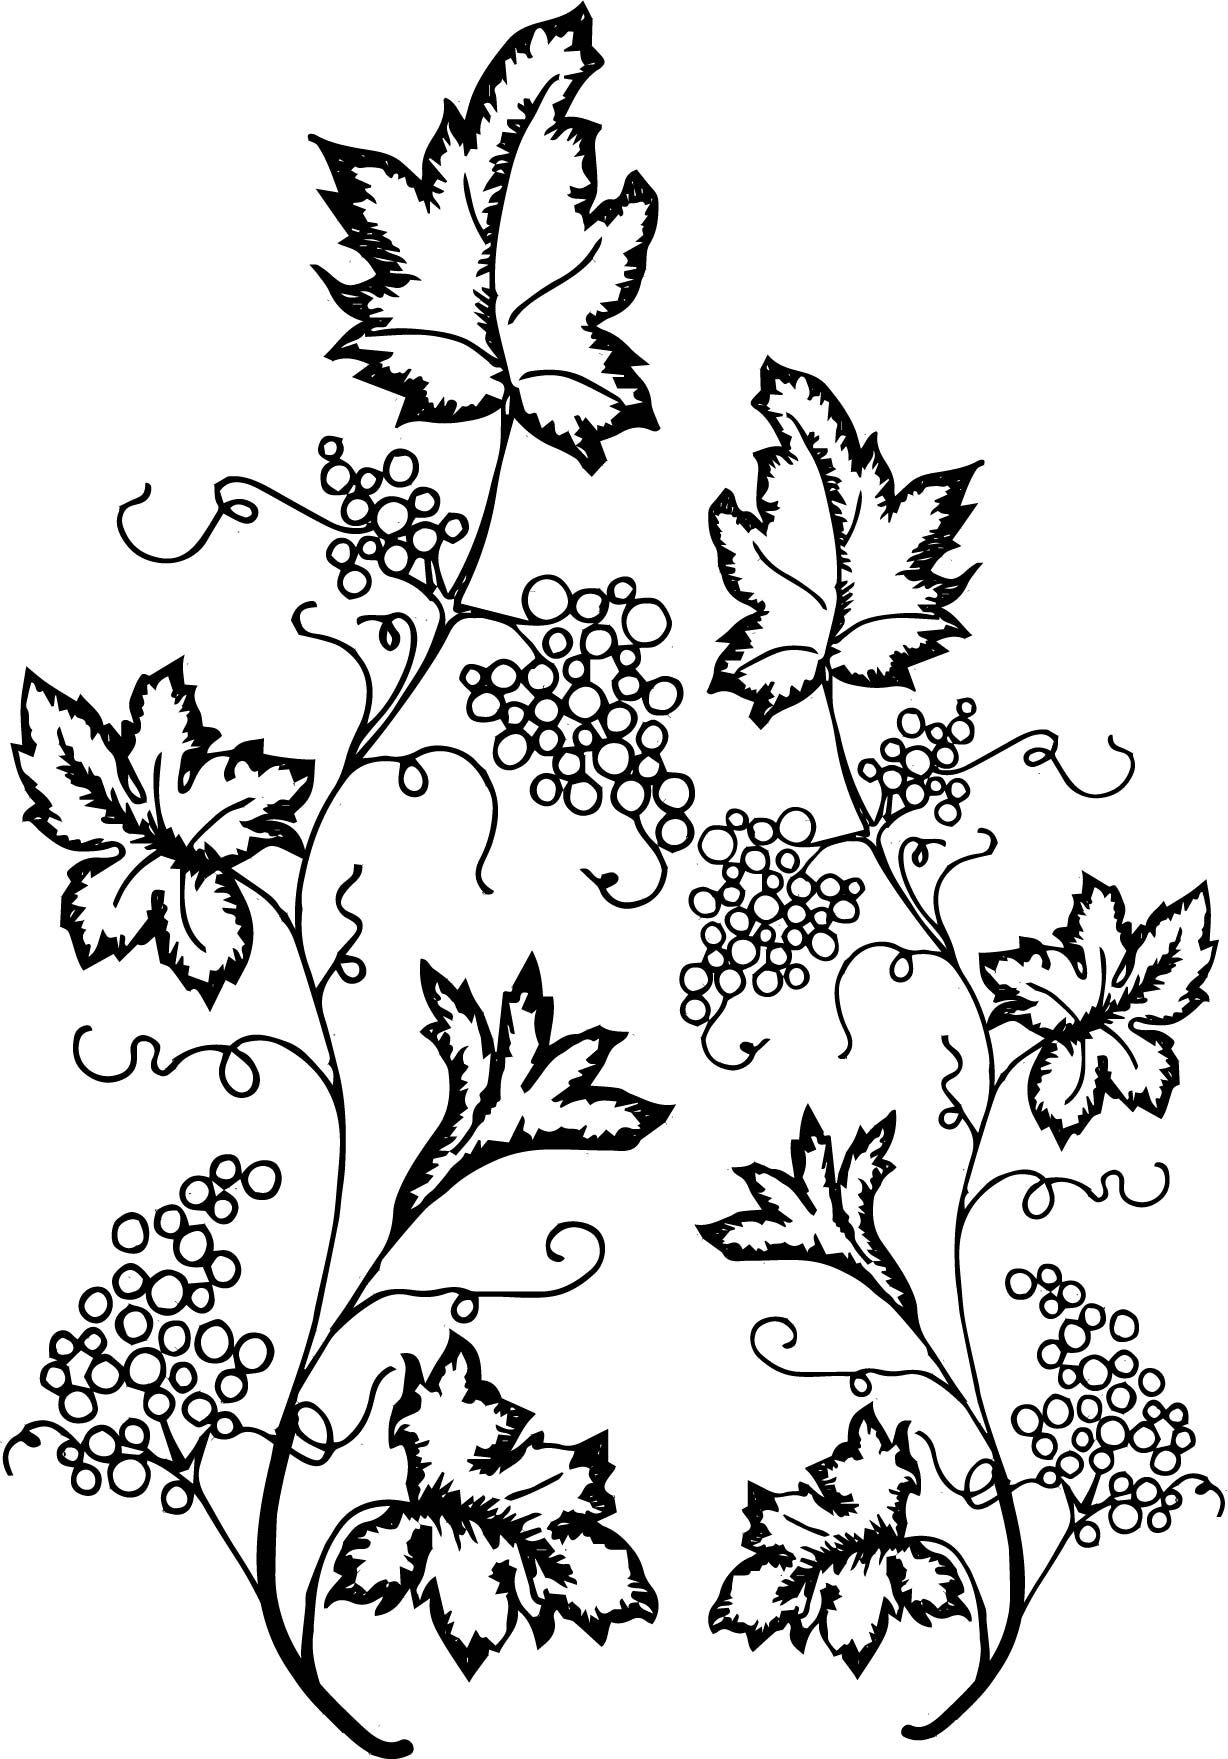 Nice Grape Leaf Ivy Coloring Page Printable Flower Coloring Pages Coloring Pages Flower Coloring Pages